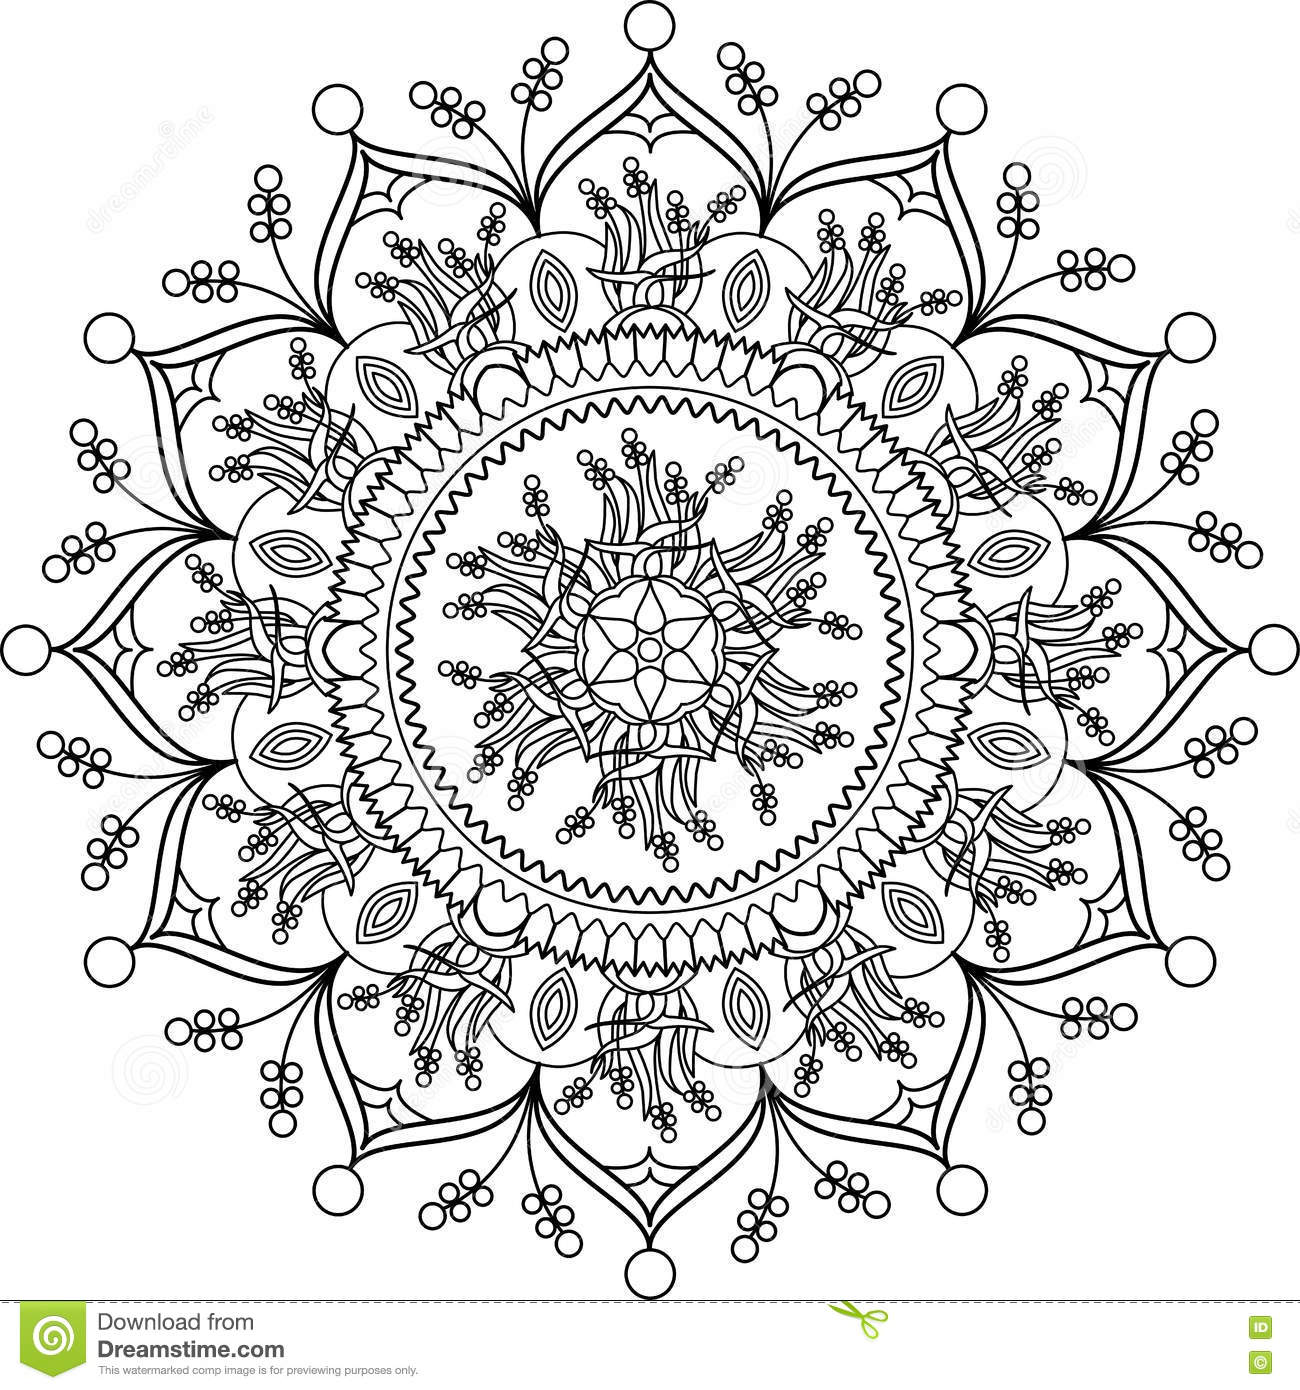 Adult Coloring Page, Mandala With Flowers. Stock Vector ...